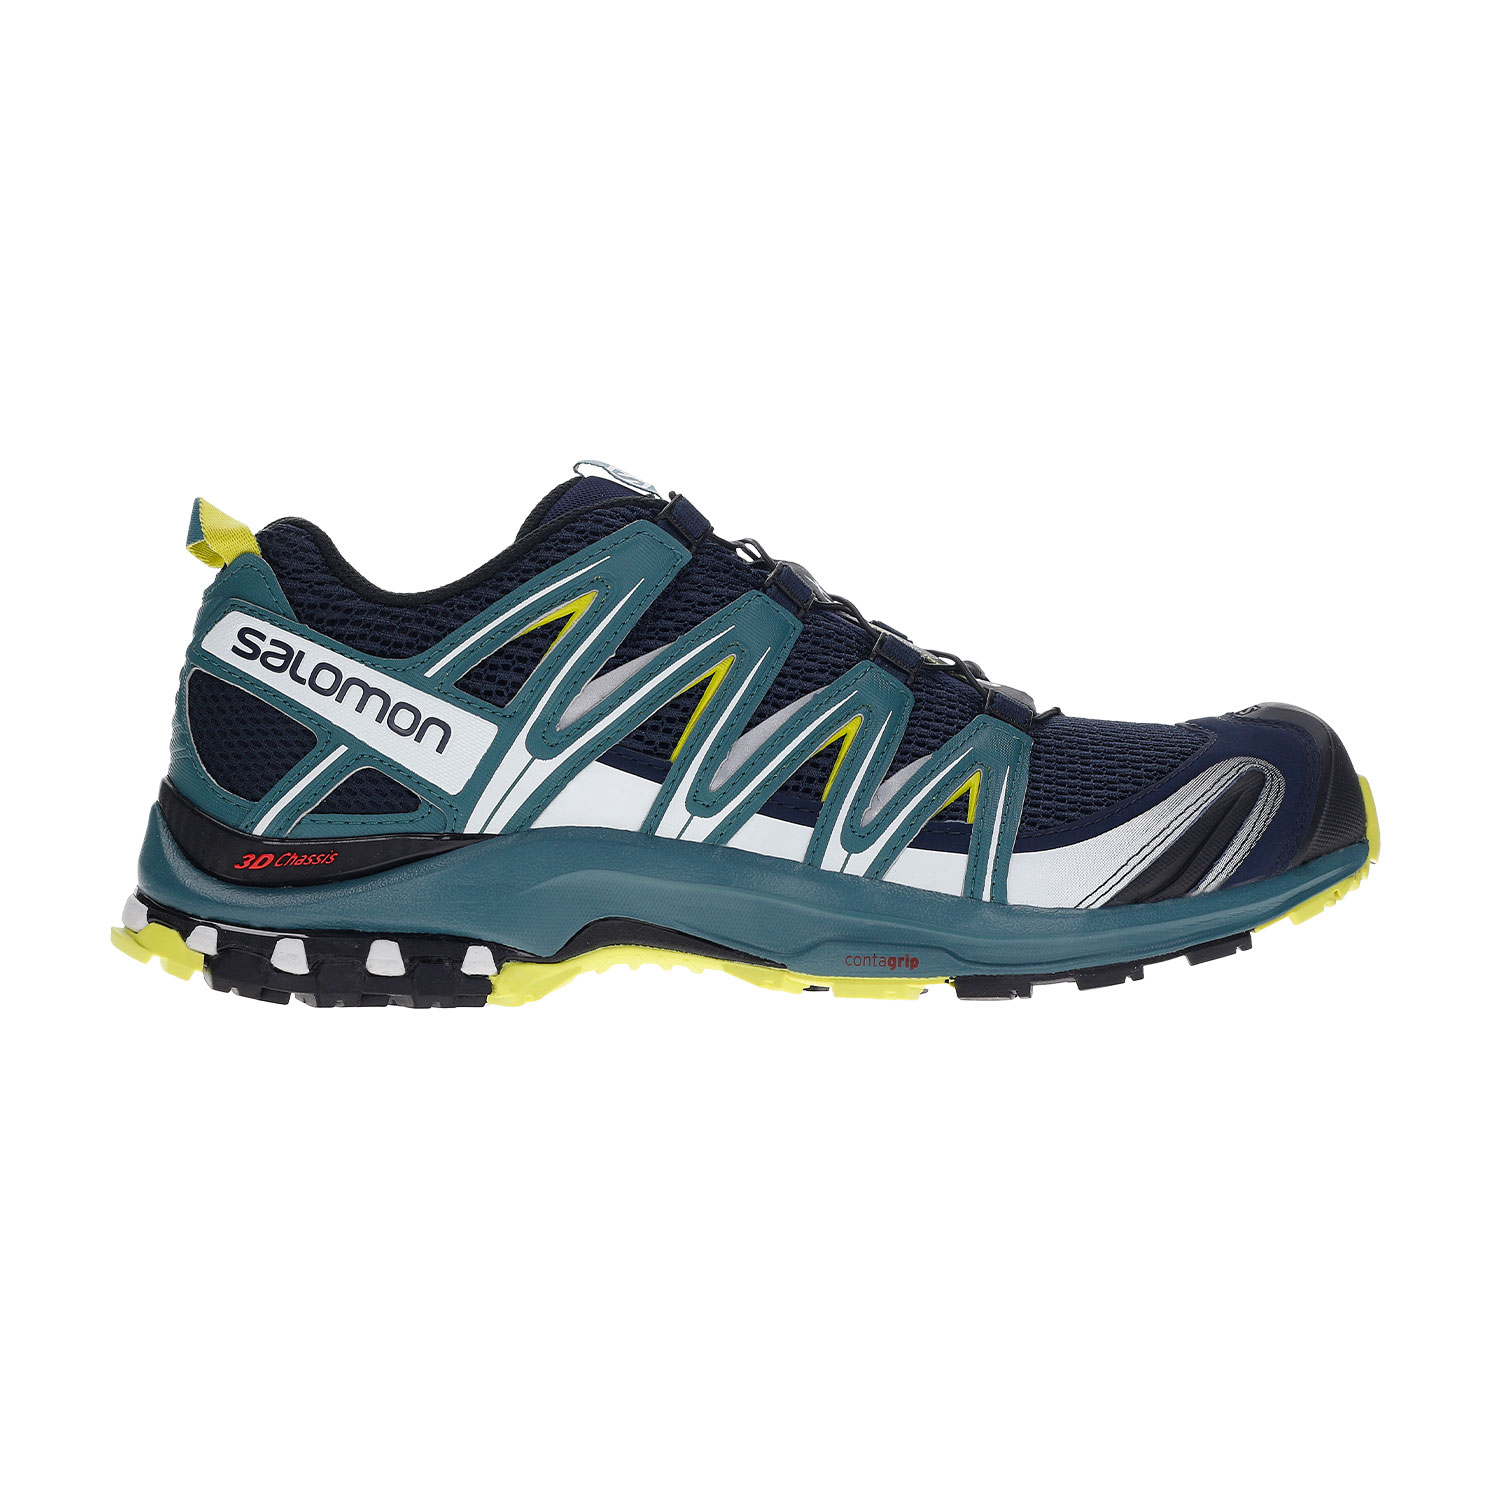 Details about Salomon XA PRO 3D CS WP Men's size 9 Trail